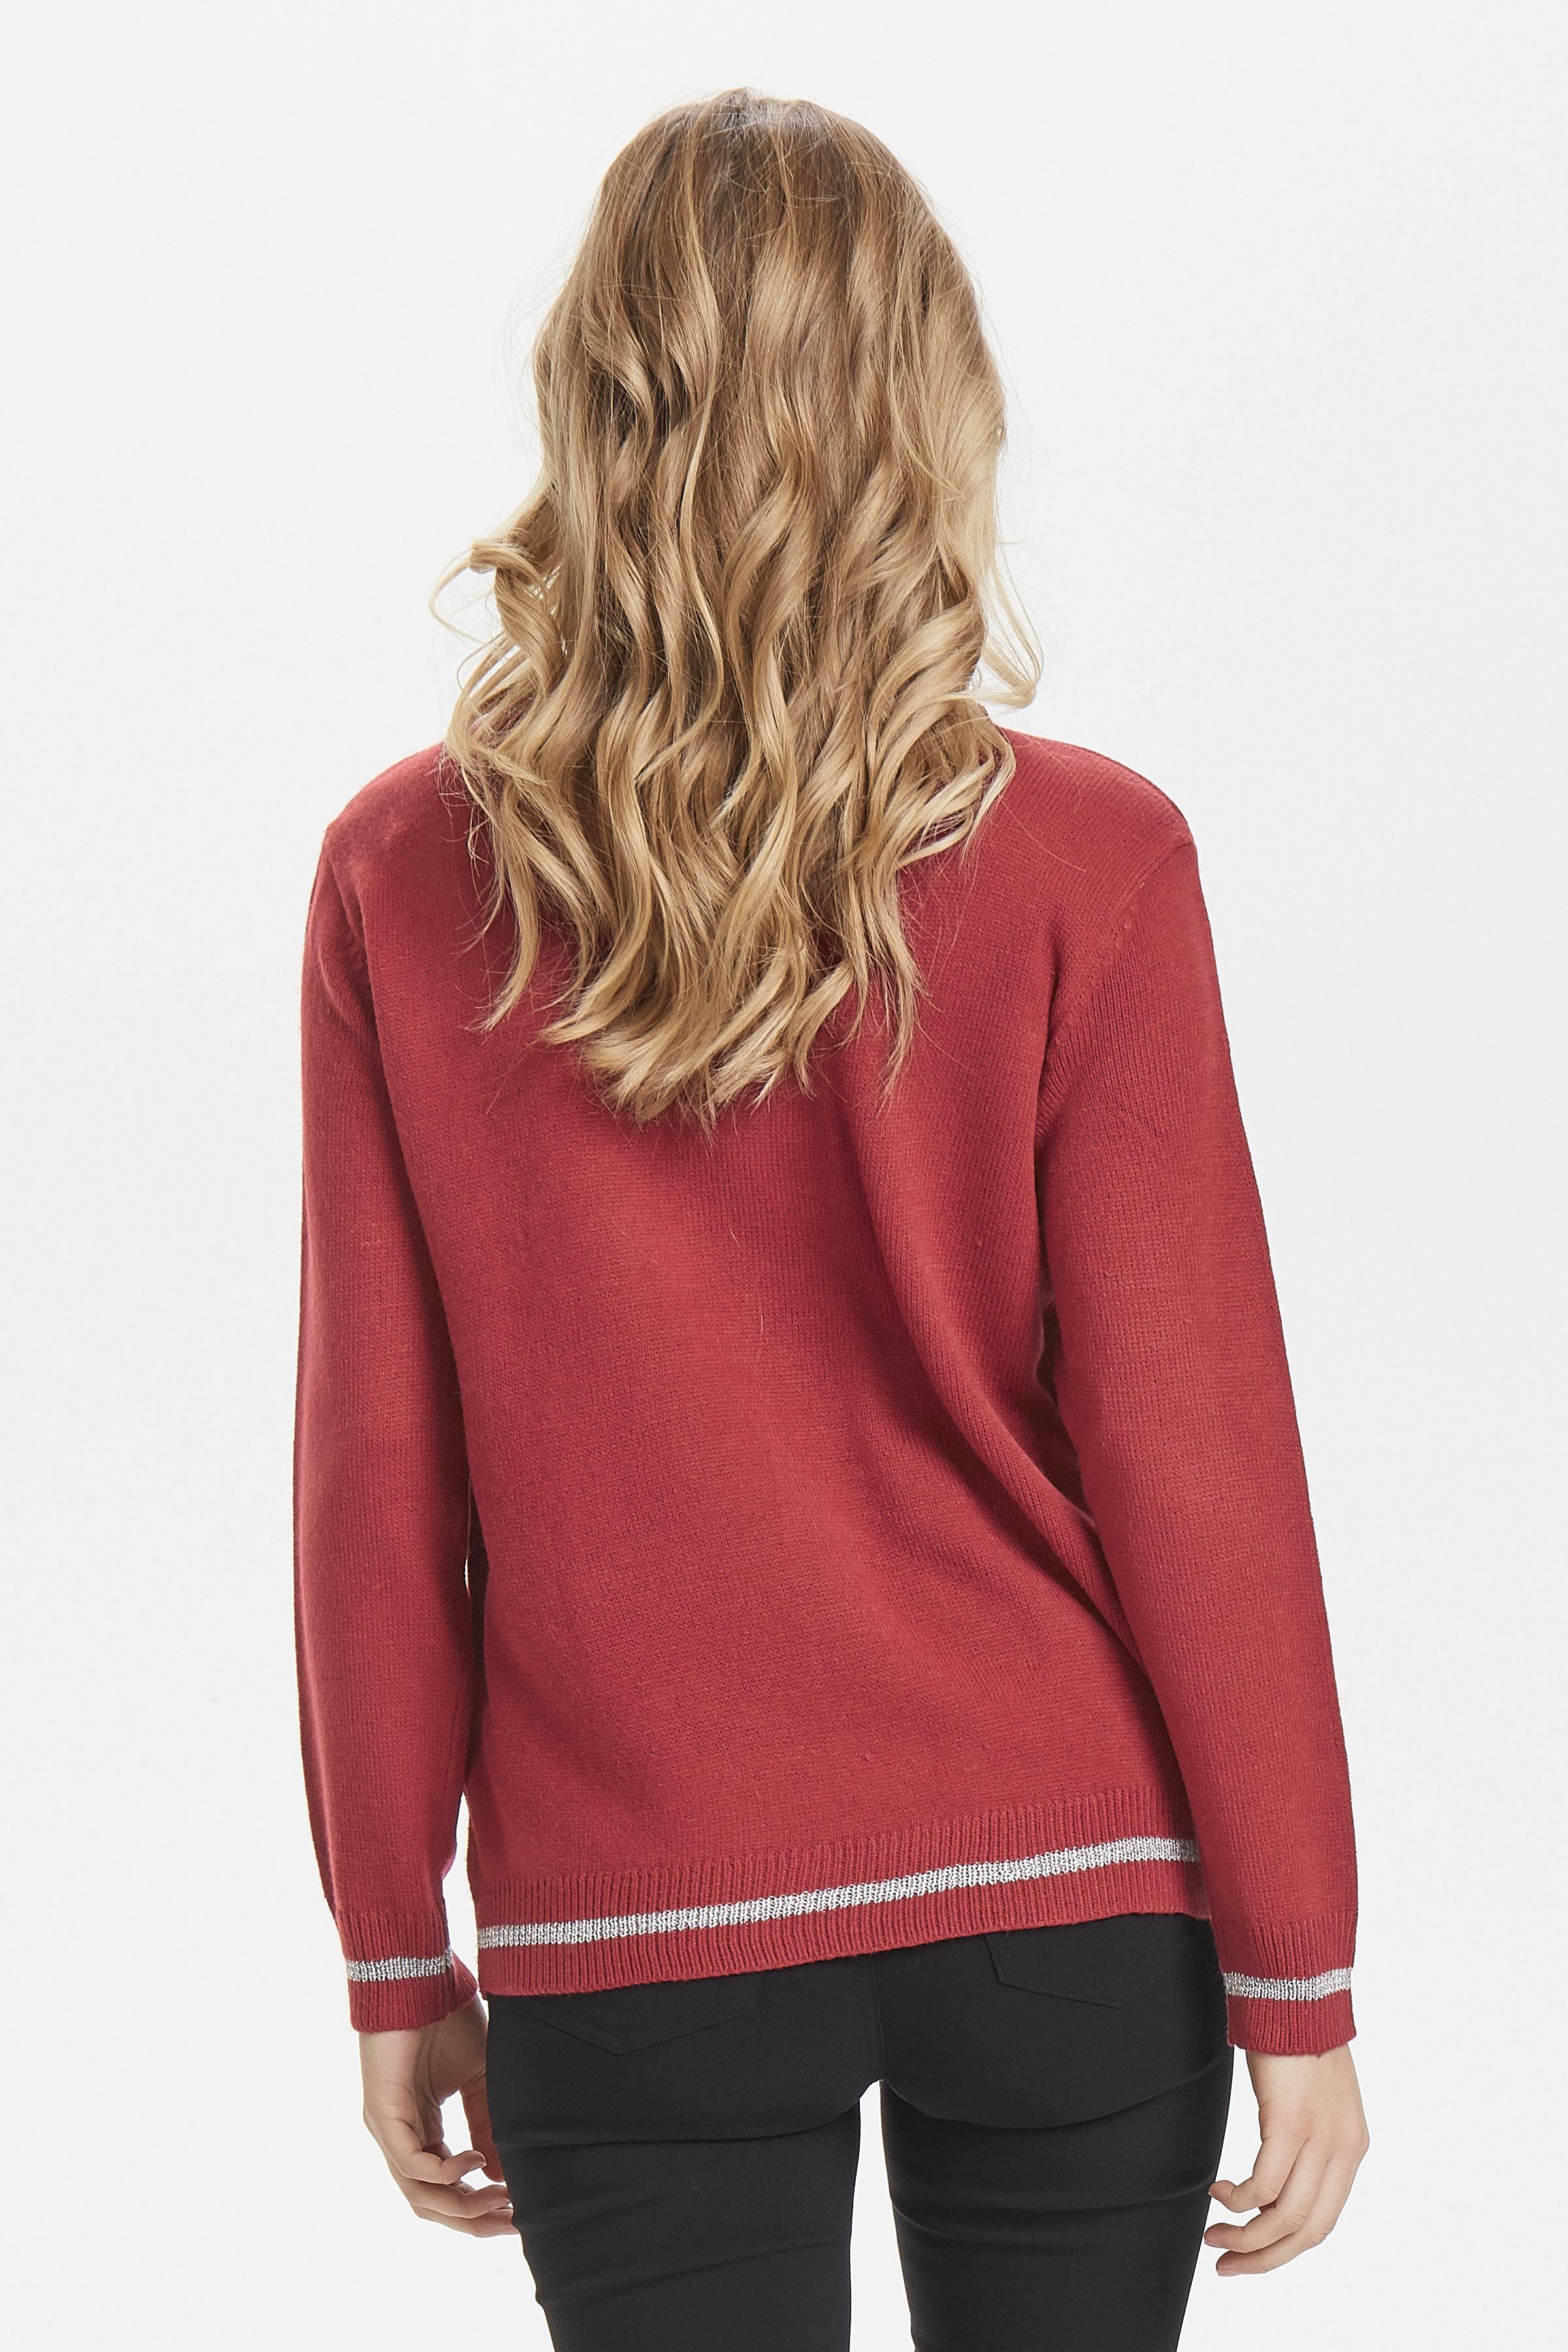 Blood Red Combi 1 Strikket pullover fra b.young - Kjøp Blood Red Combi 1 Strikket pullover fra størrelse XS-XXL her